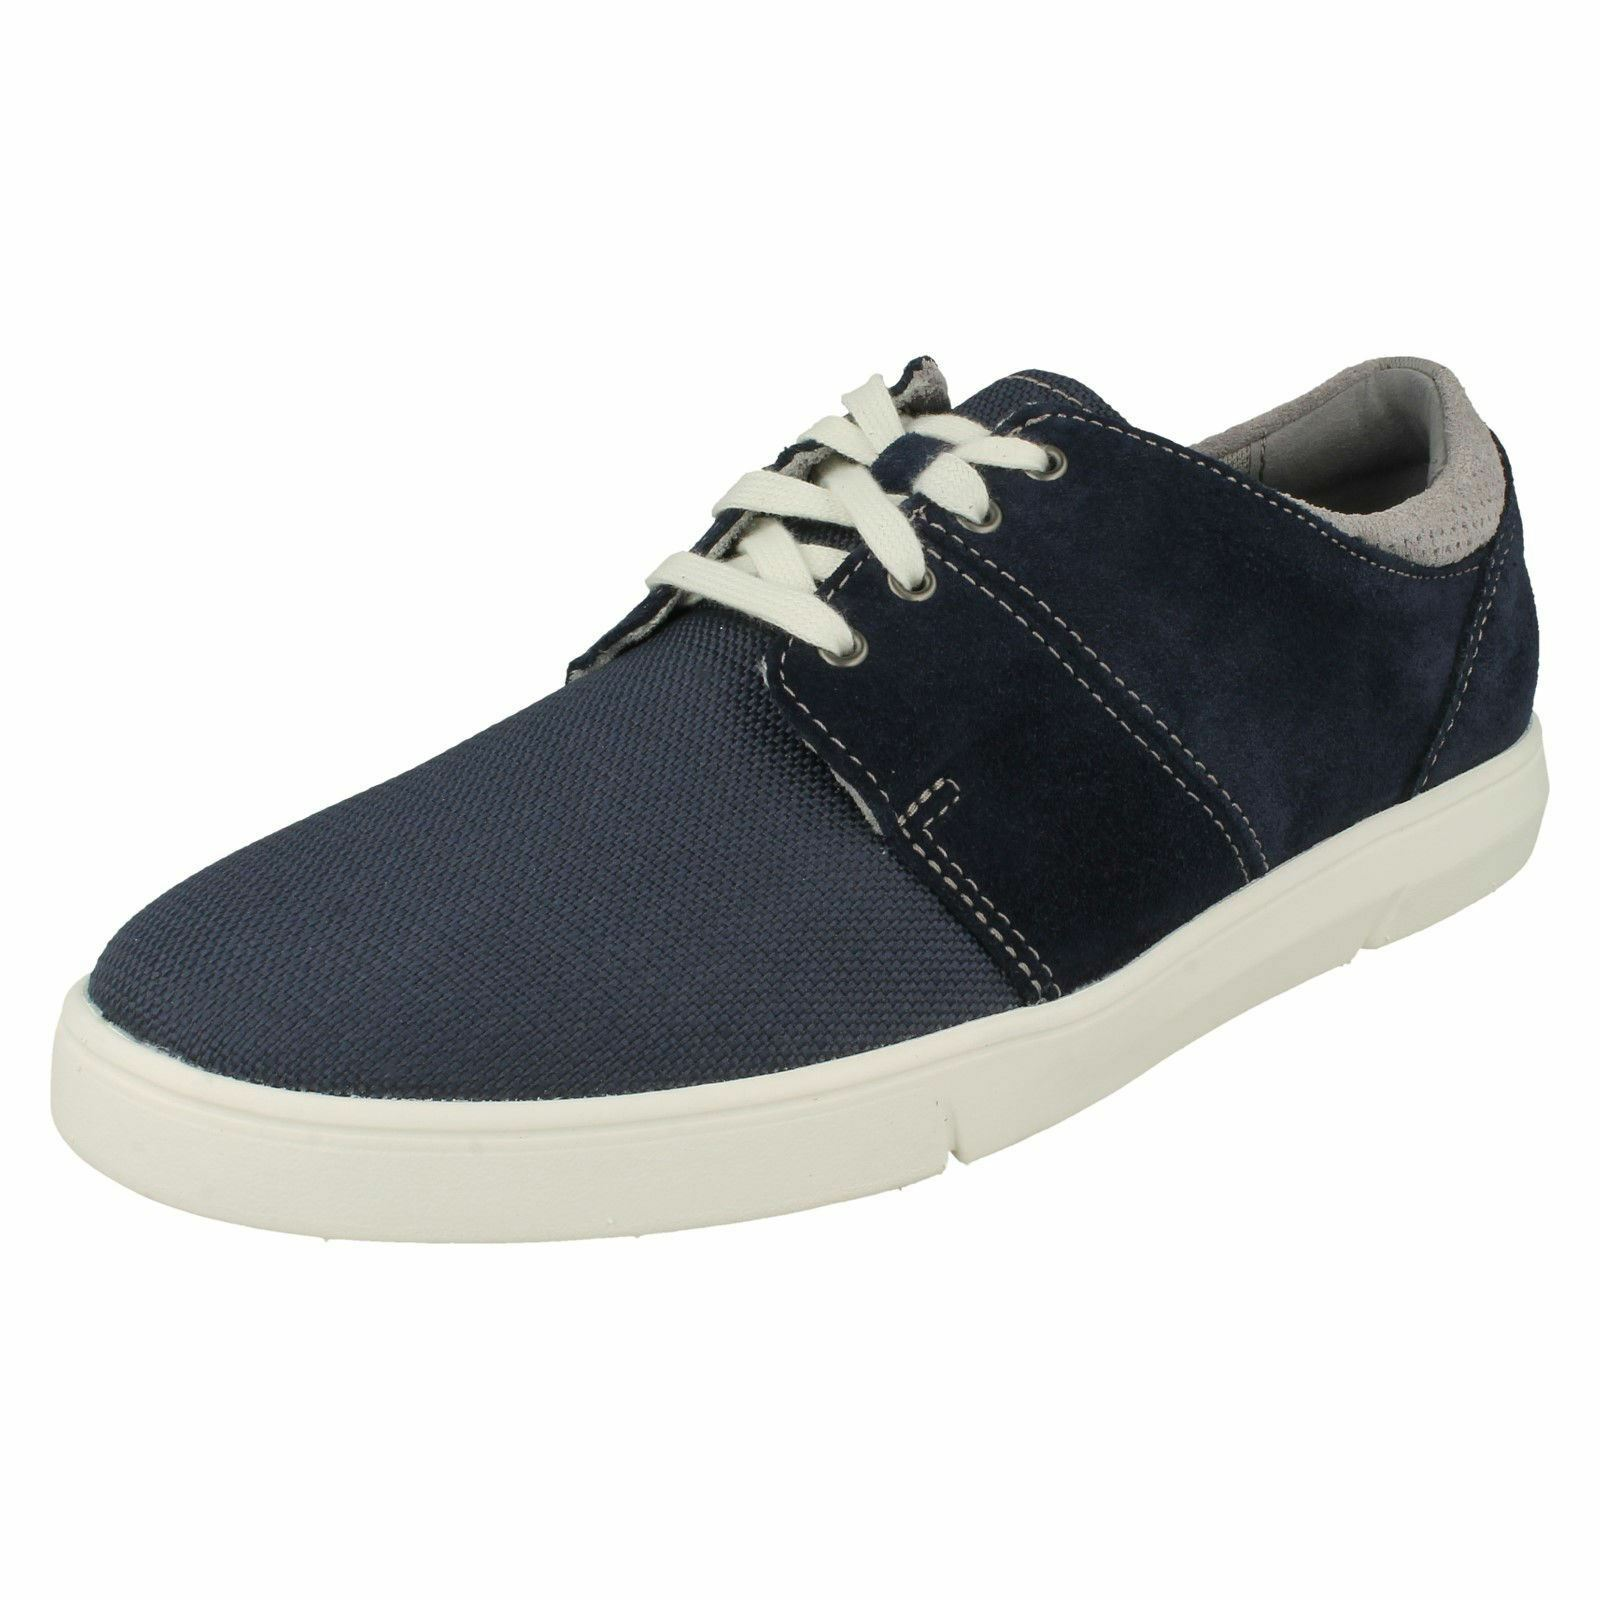 differently 8c1fe 8c4a0 Mens Clarks Casual Lace Up Up Up schuhe Landry Edge ...